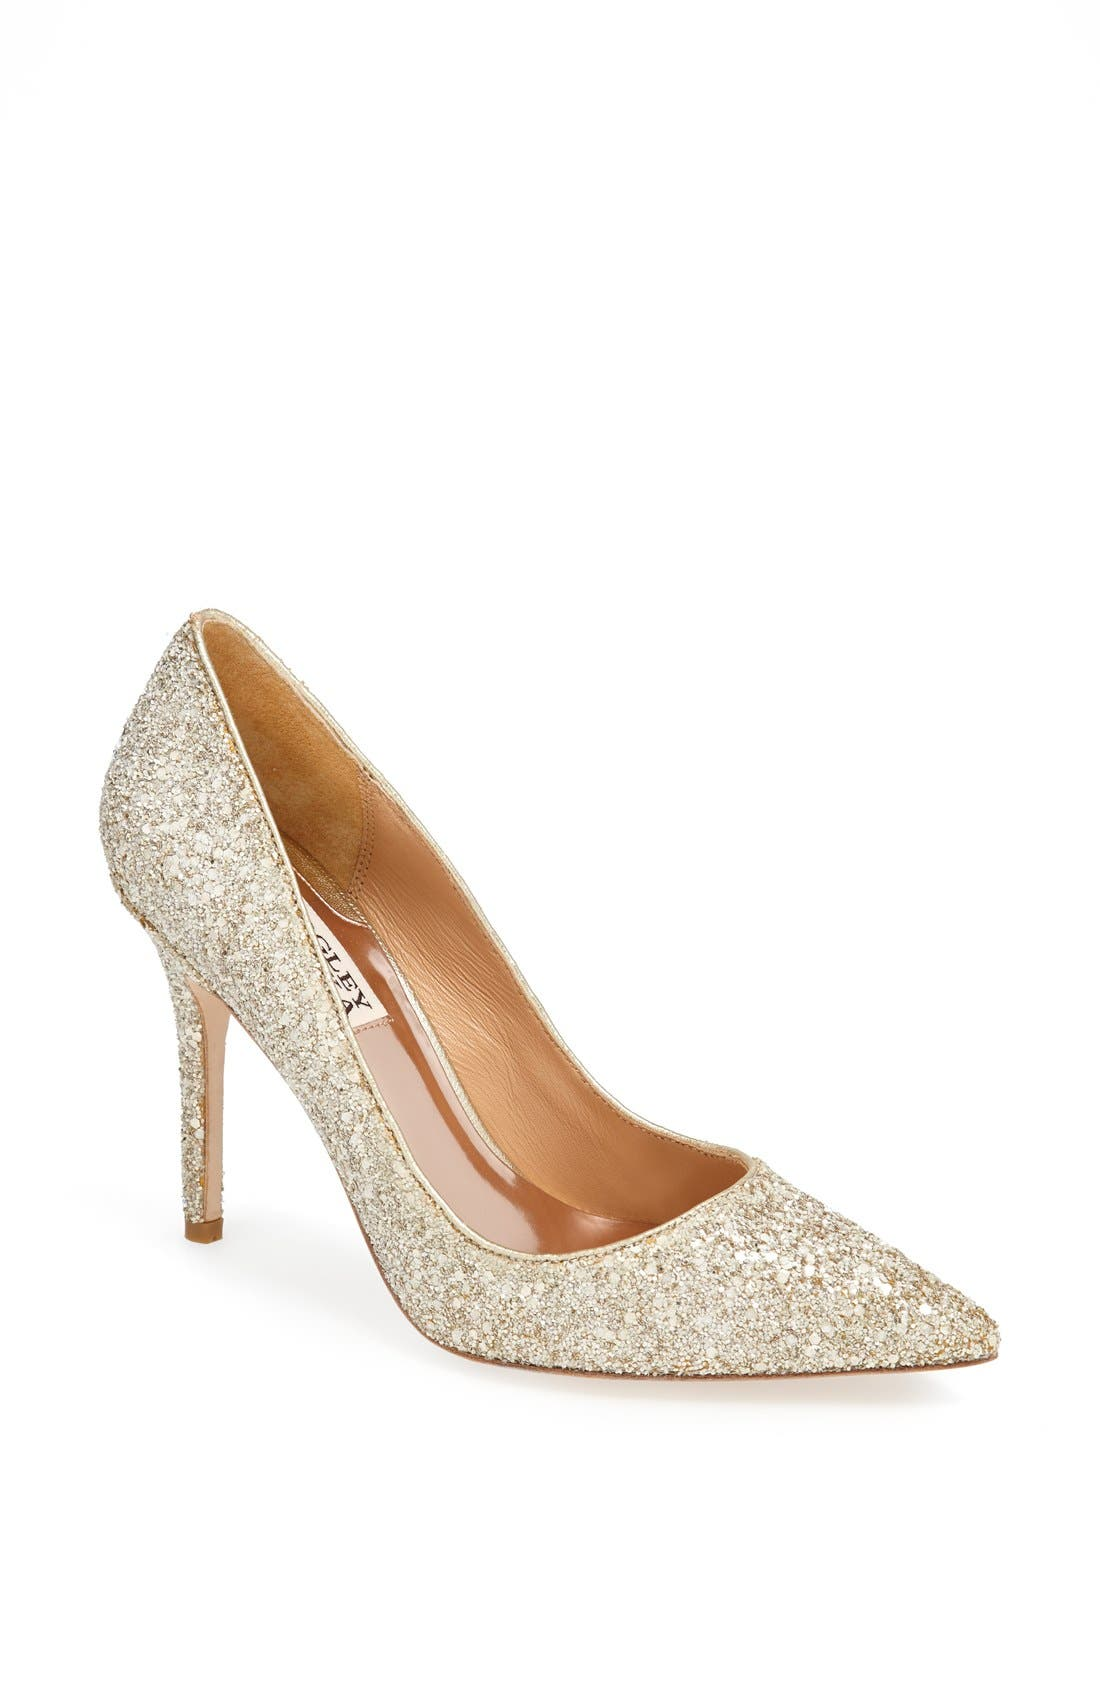 Alternate Image 1 Selected - Badgley Mischka 'Kat' Pump